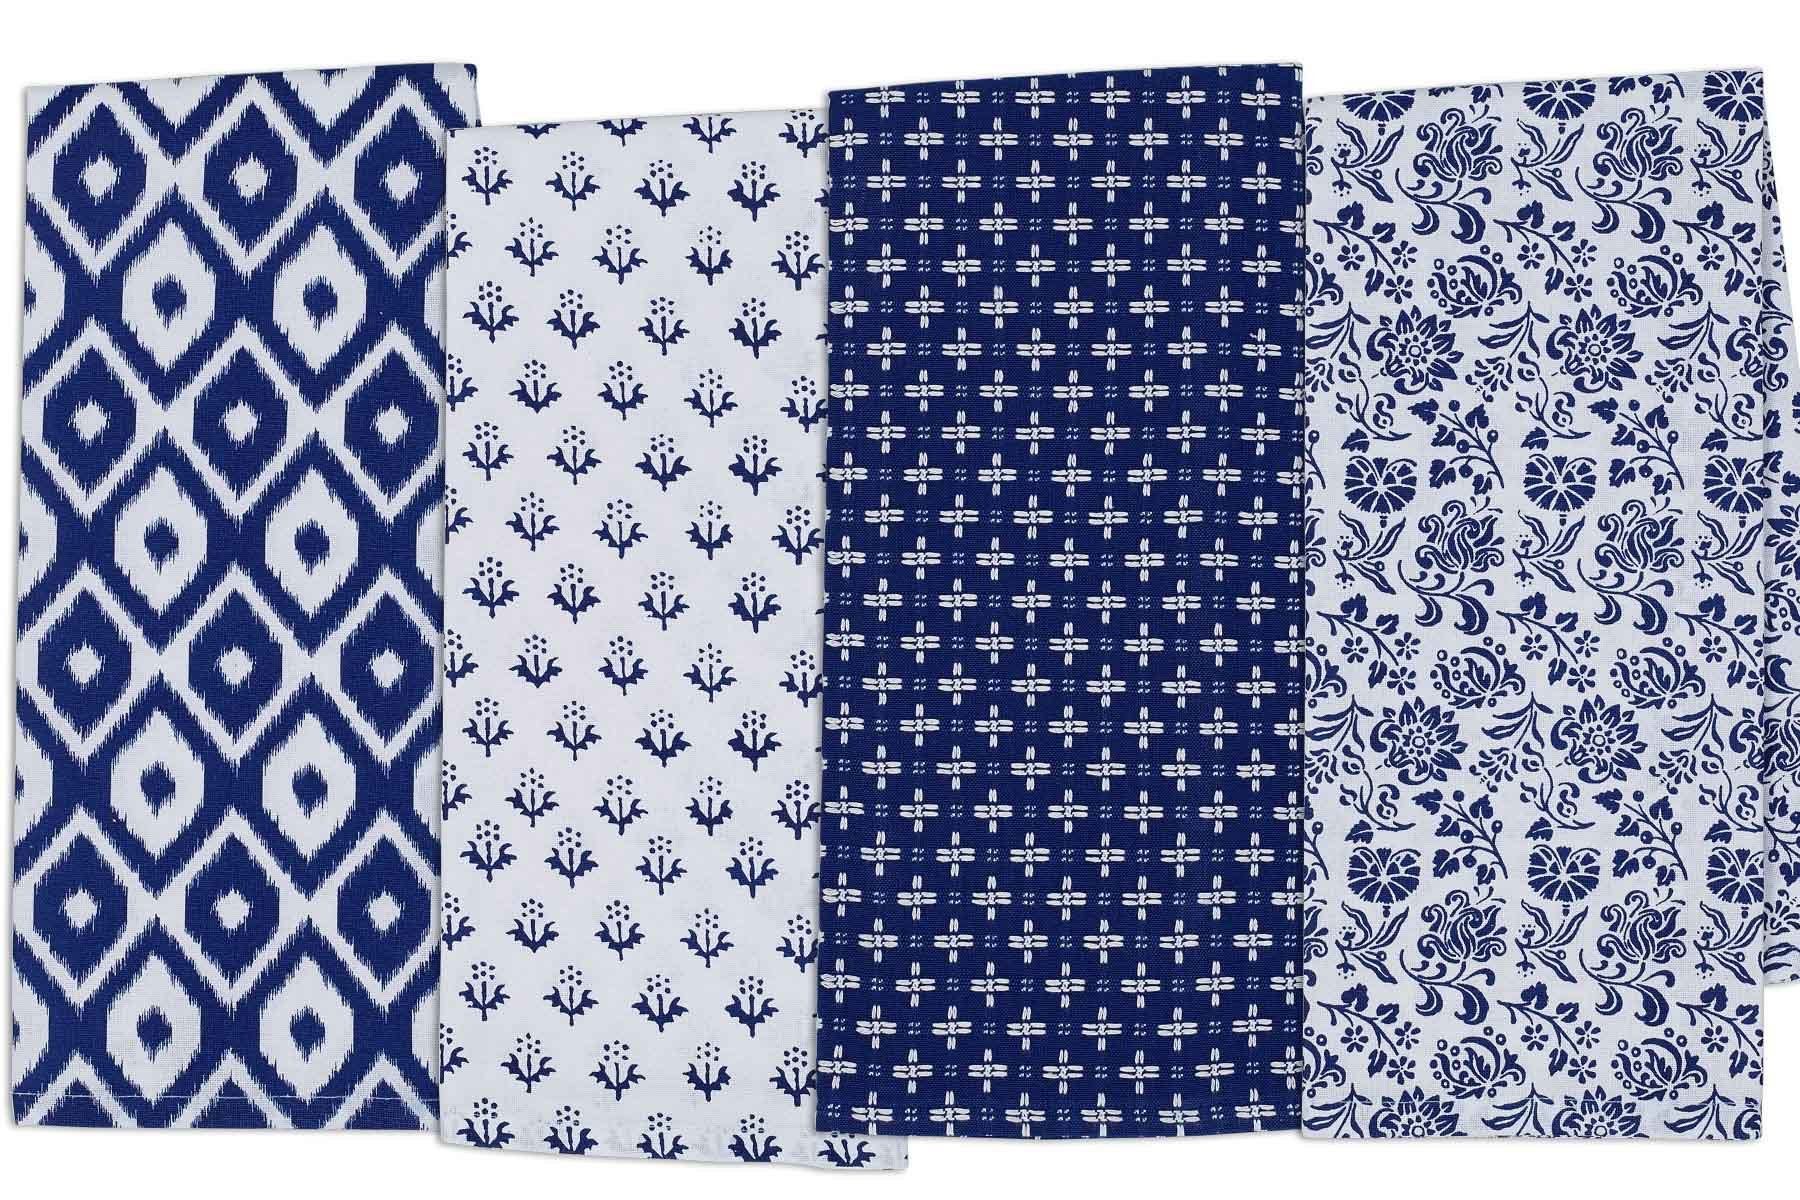 DII COSD35140 Cotton Dish, Decorative Oversized Towels, Perfect for Every Day Home Kitchen, Holidays and Housewarming Gifts, 18x28, Blue Market